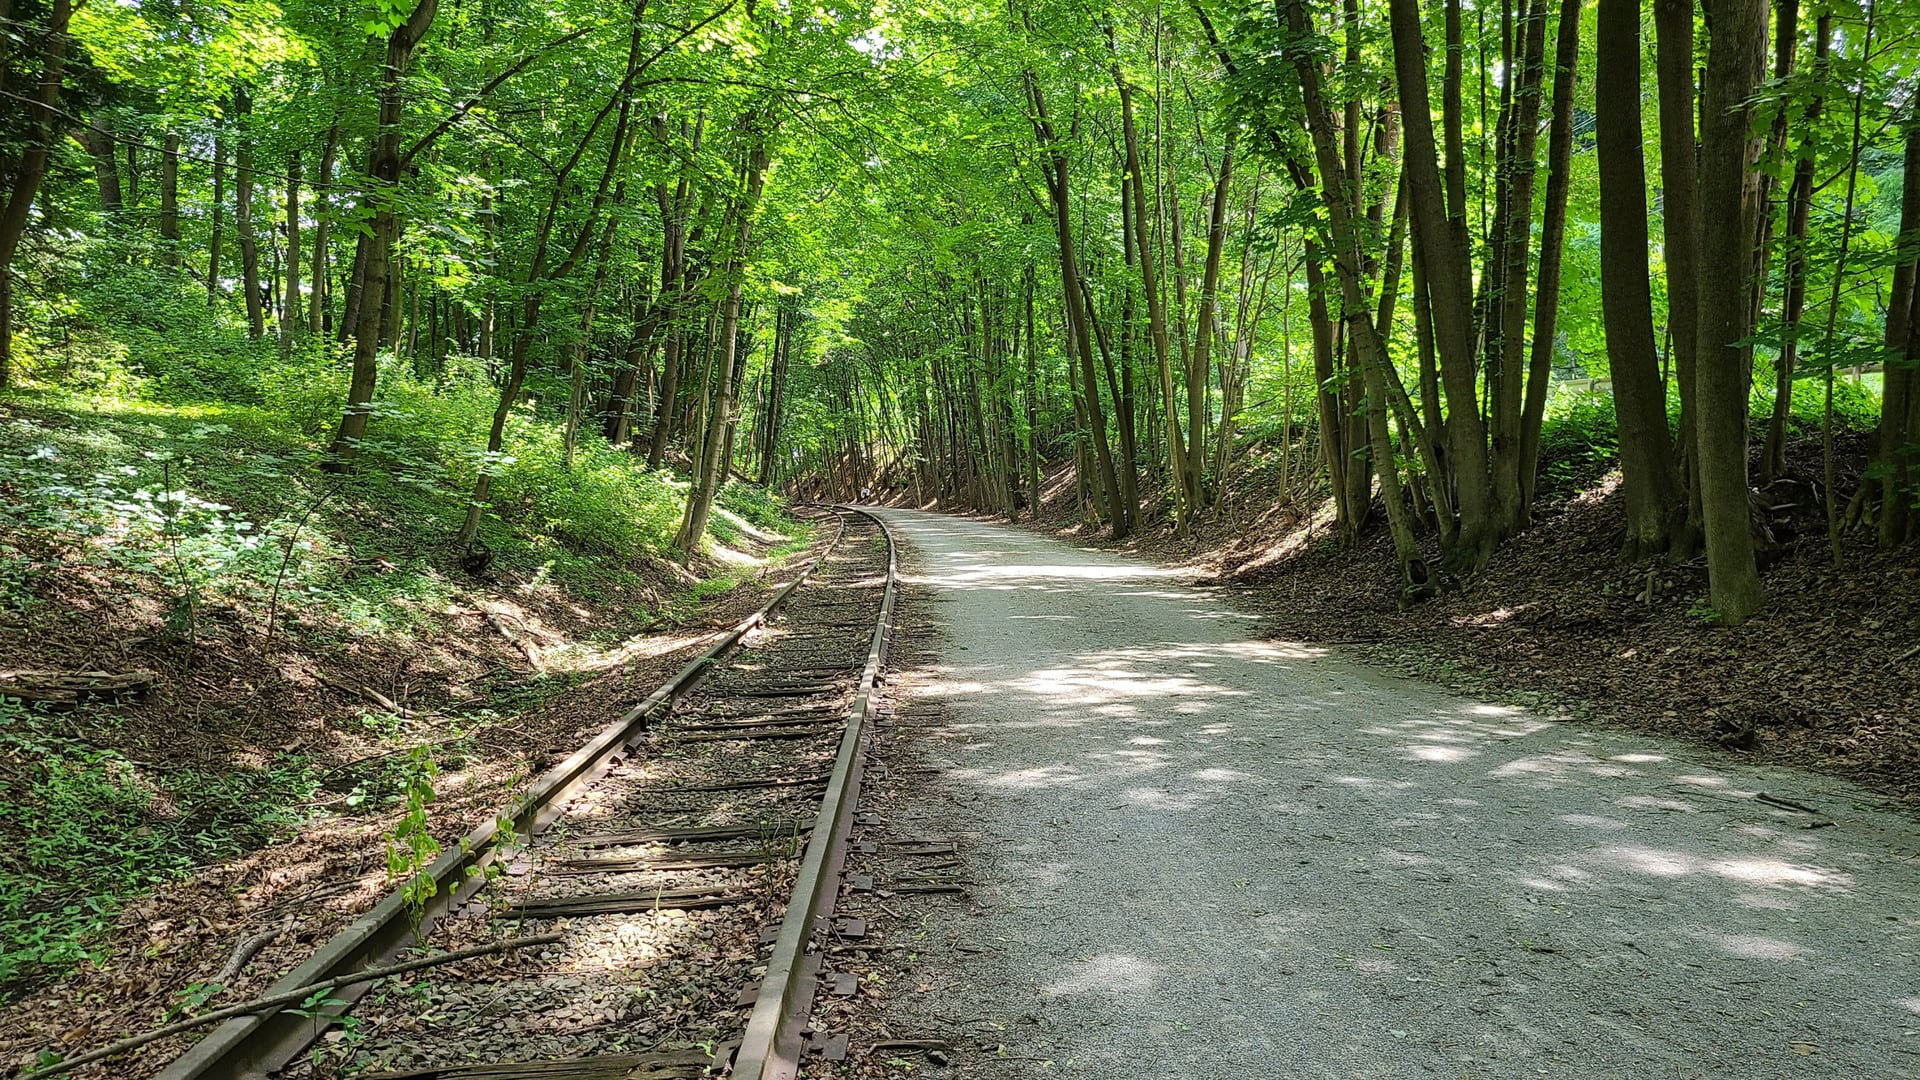 A crushed gravel trail runs alongside a railroad through the woods. The trail bends to the left in the distance.